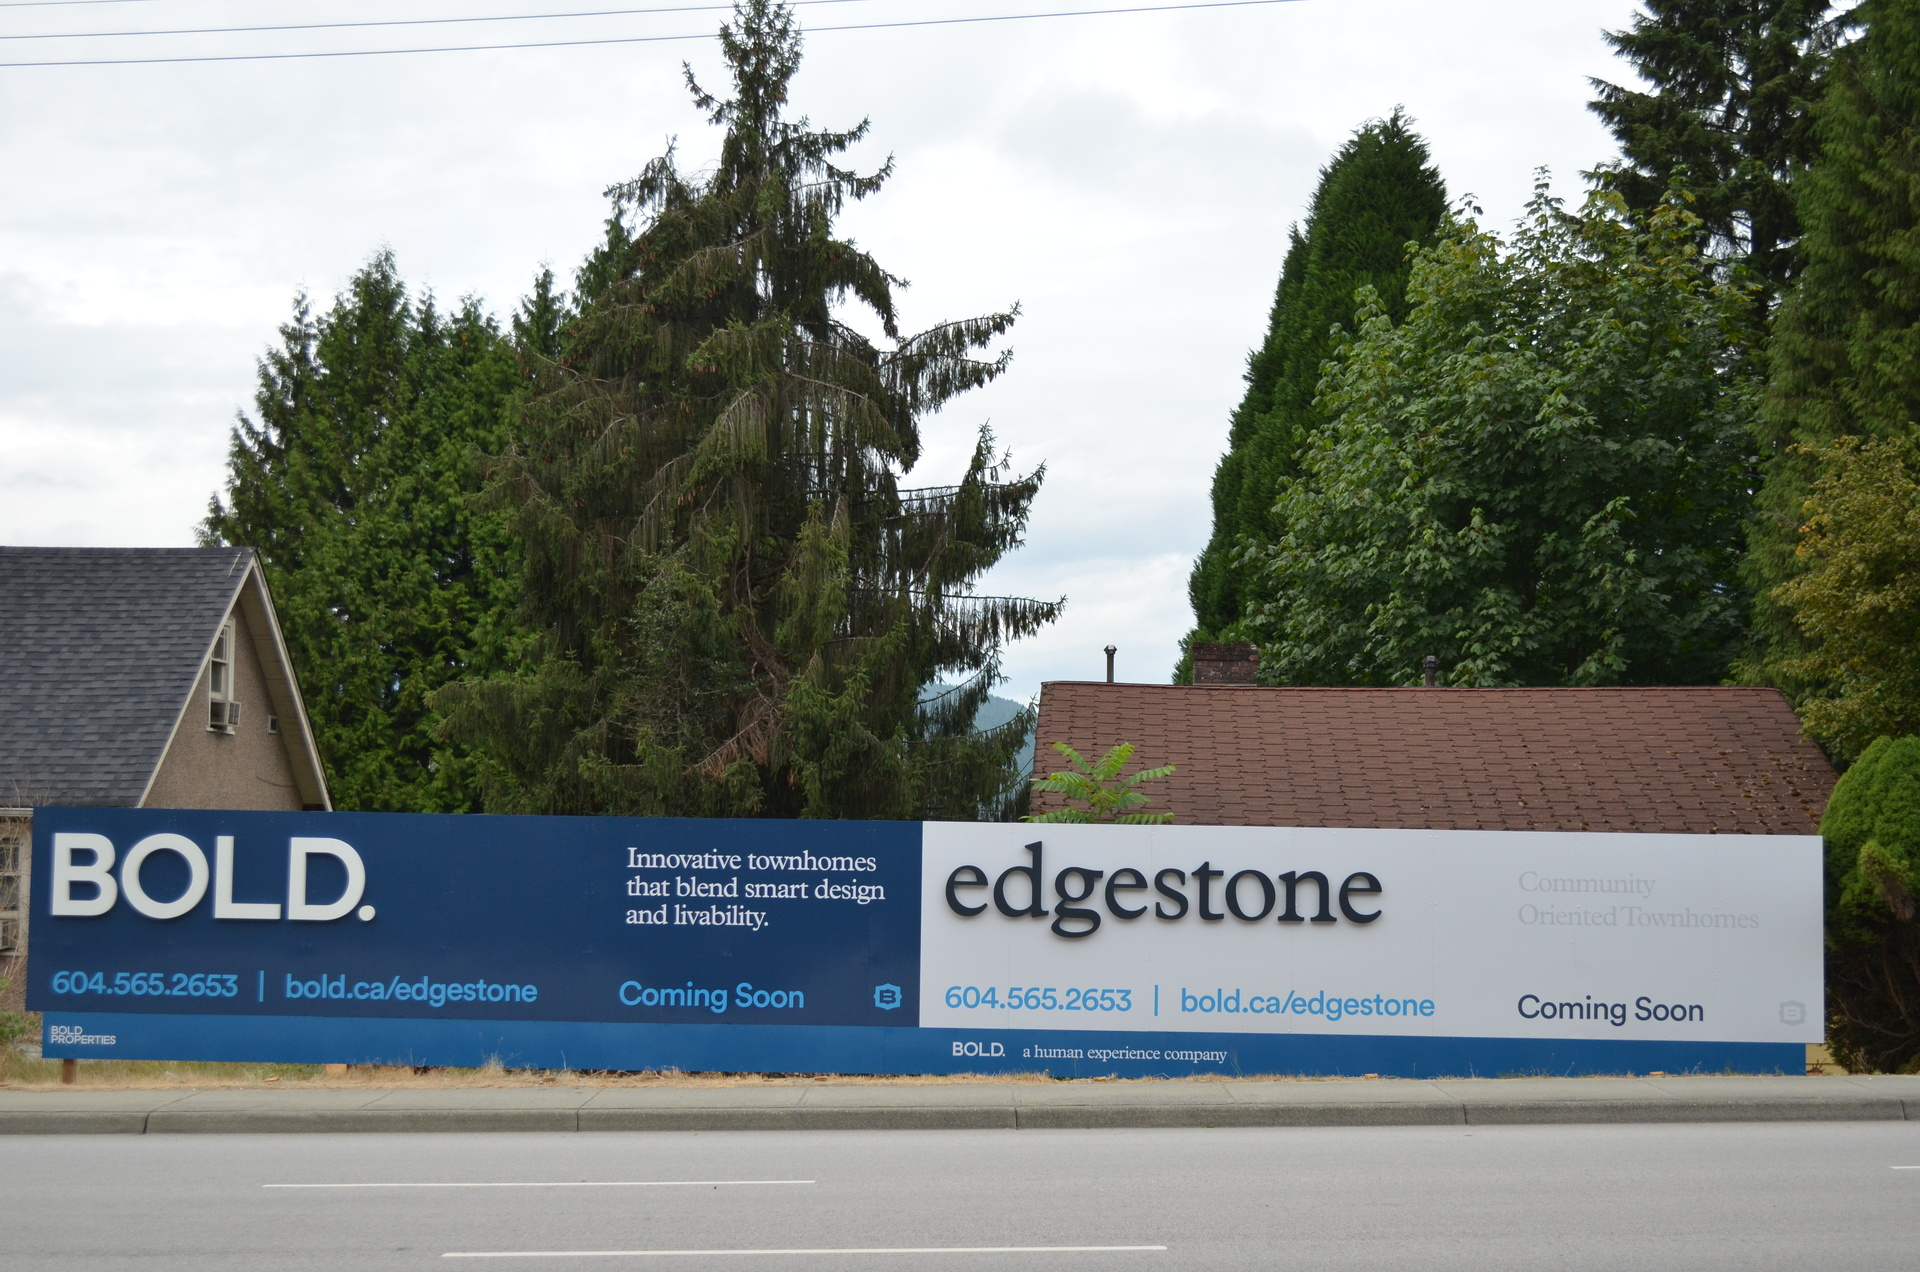 Edgestone Site Port Moody  at Edgestone (2126 St Johns Street, Port Moody Centre, Port Moody)